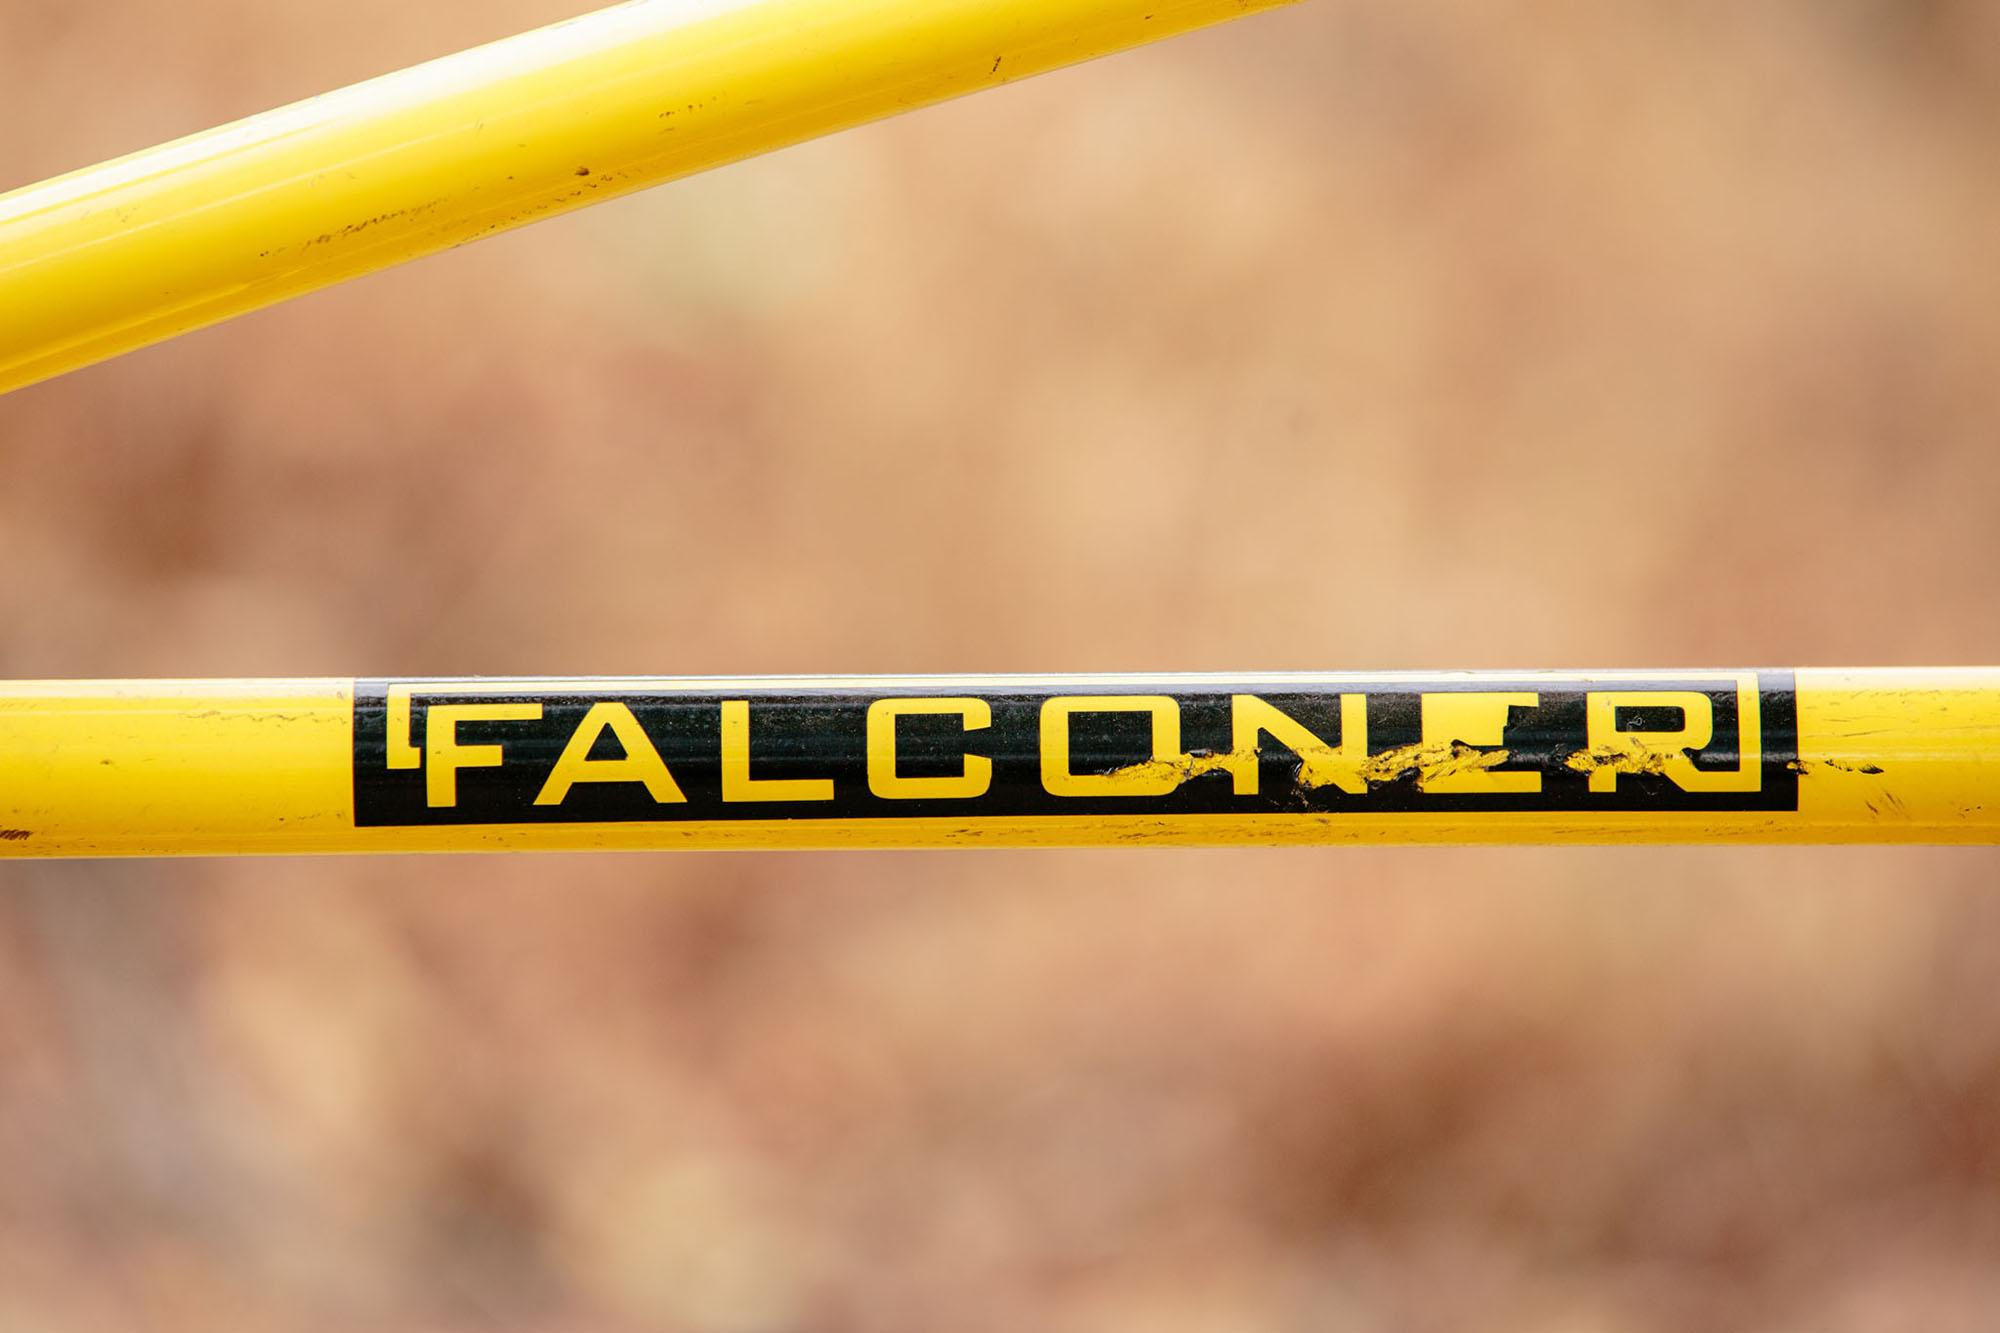 Falconer: Tribute to cooks brother cruiser. Coaster brake. Cam ripped this down Tam back in the day.